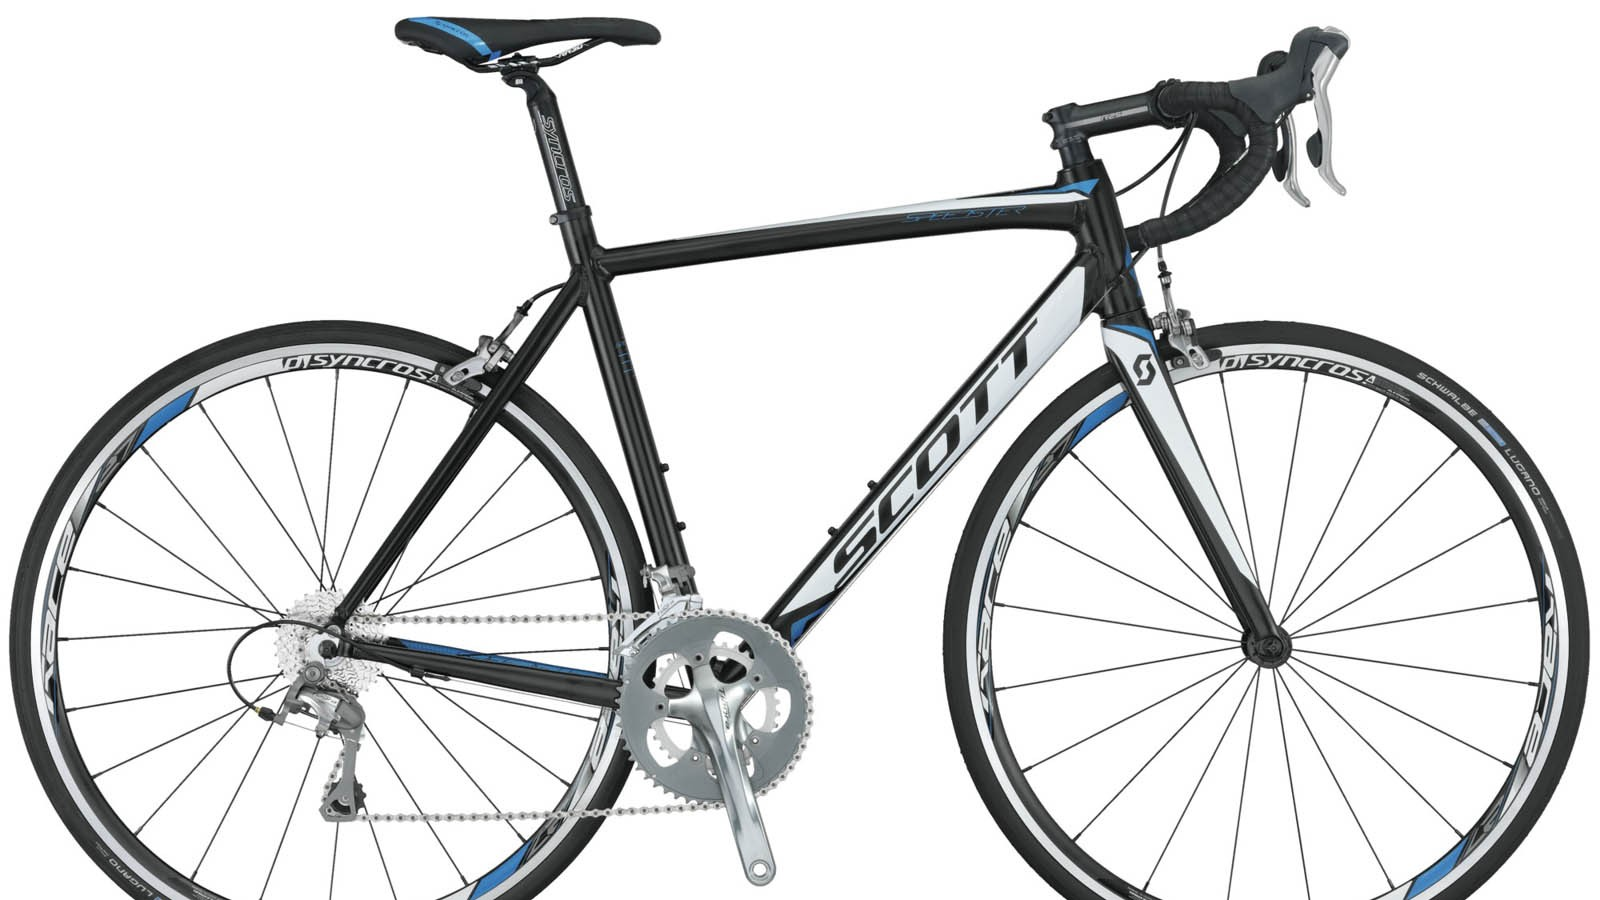 The Scott Speedster 30 is among the bikes recalled